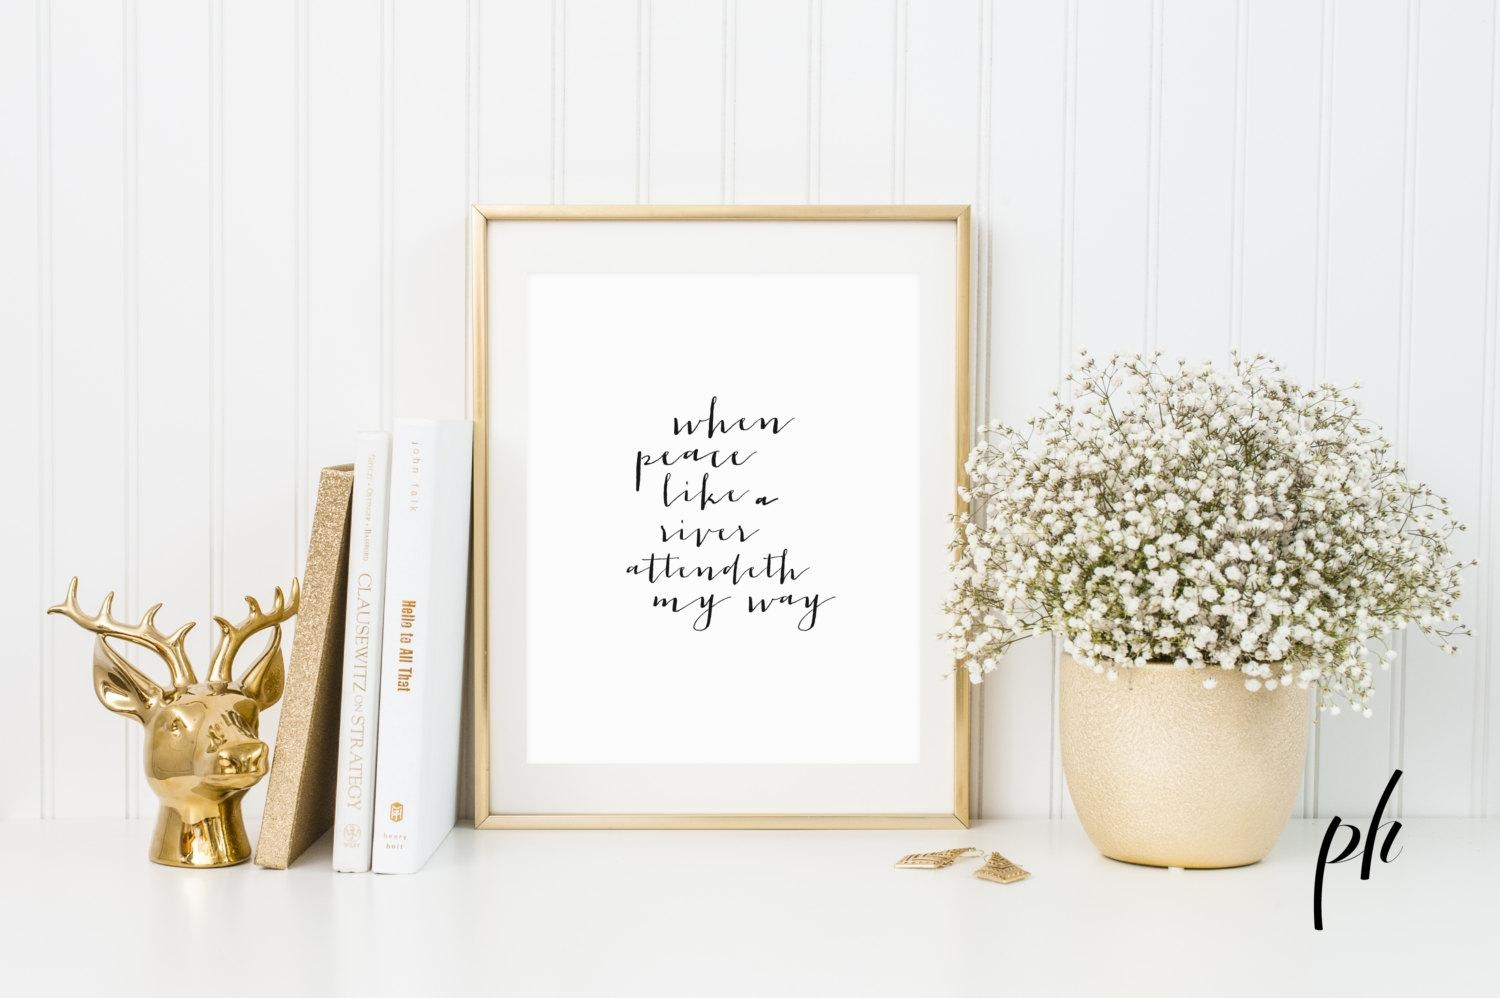 Hymn Print Hymns Hymn Art Hymns And Verses Calligraphy Throughout Bible Verses Framed Art (View 13 of 20)